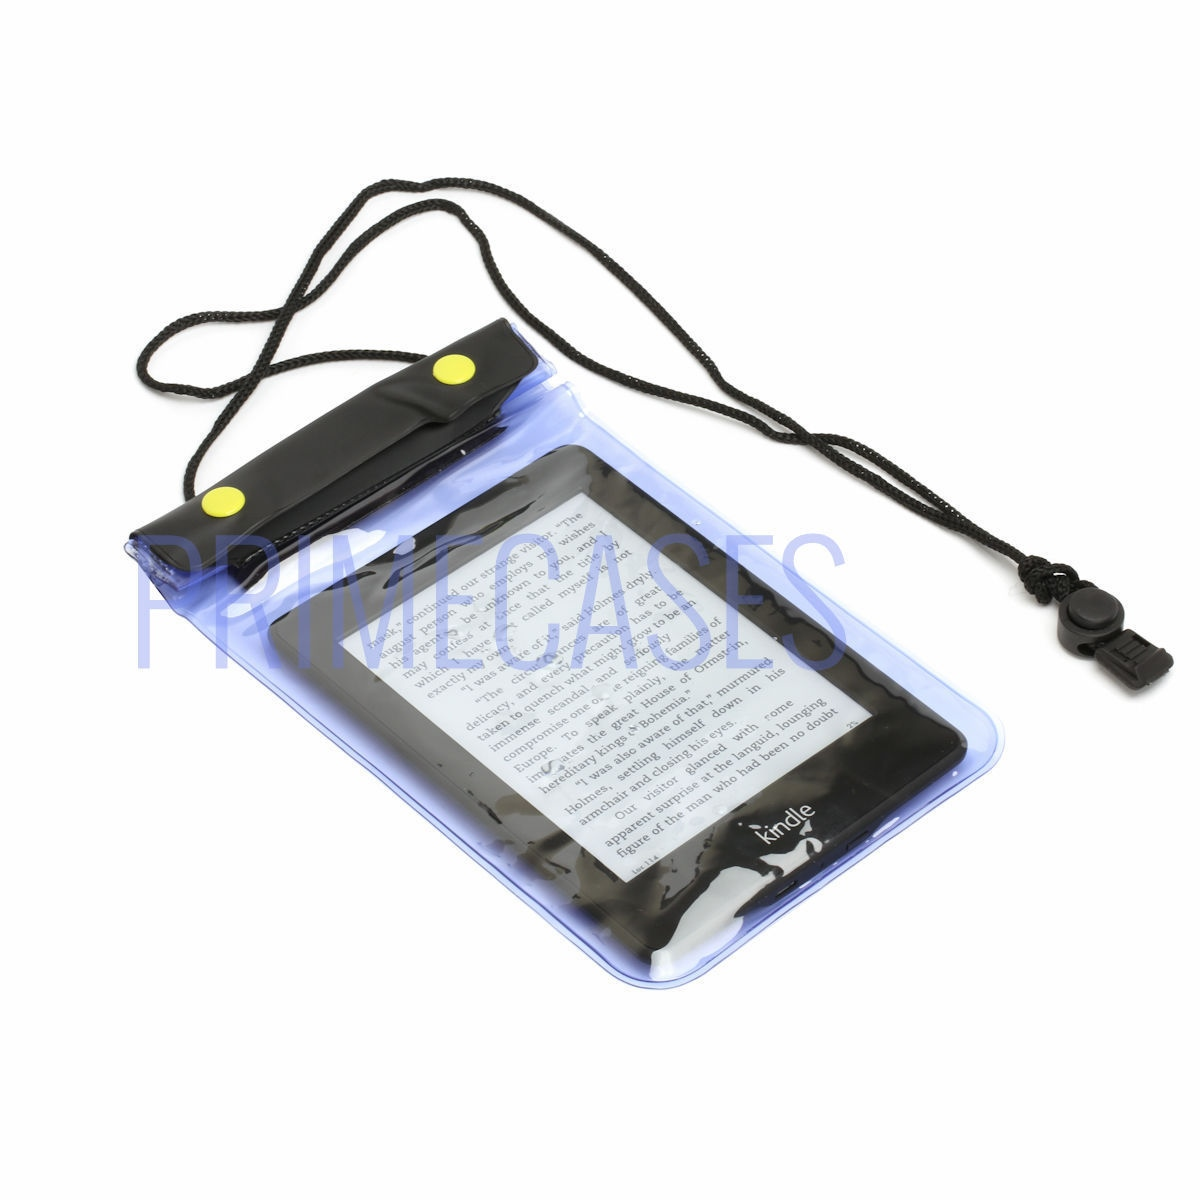 Details about WATERPROOF CASE COVER FOR NEW EREADER AMAZON KINDLE OASIS